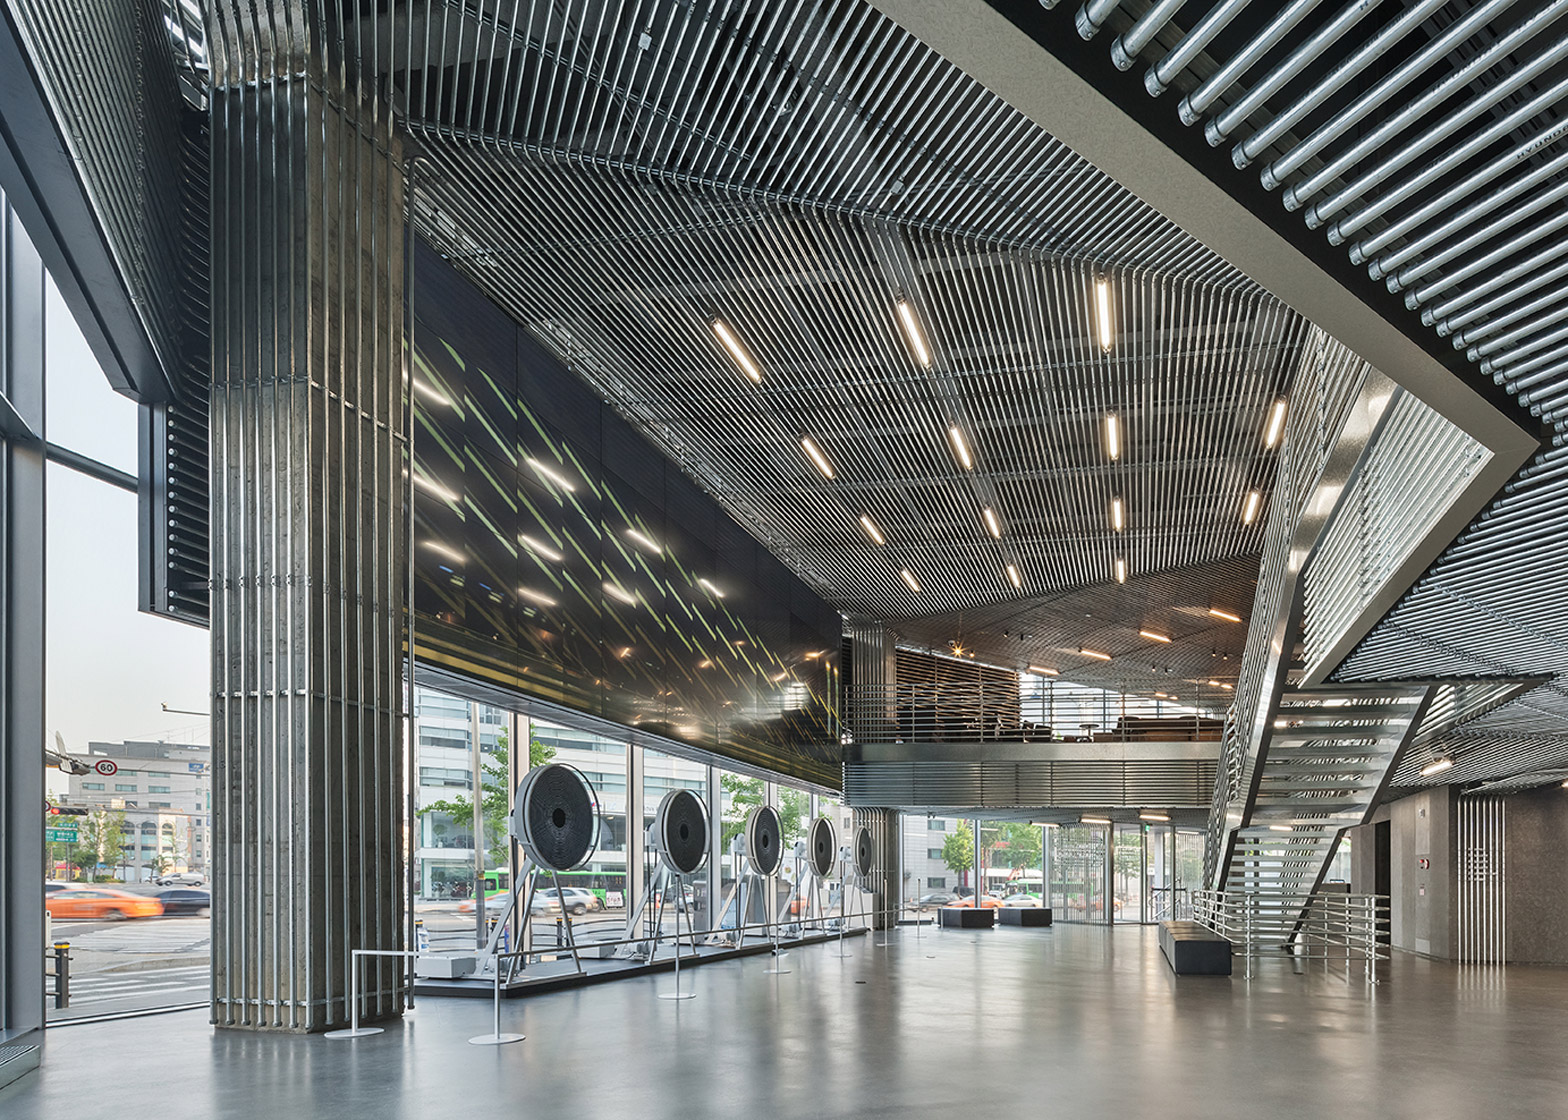 Hyundai Motorstudio, Seoul, South Korea, by Eulho Suh/Suh Architects